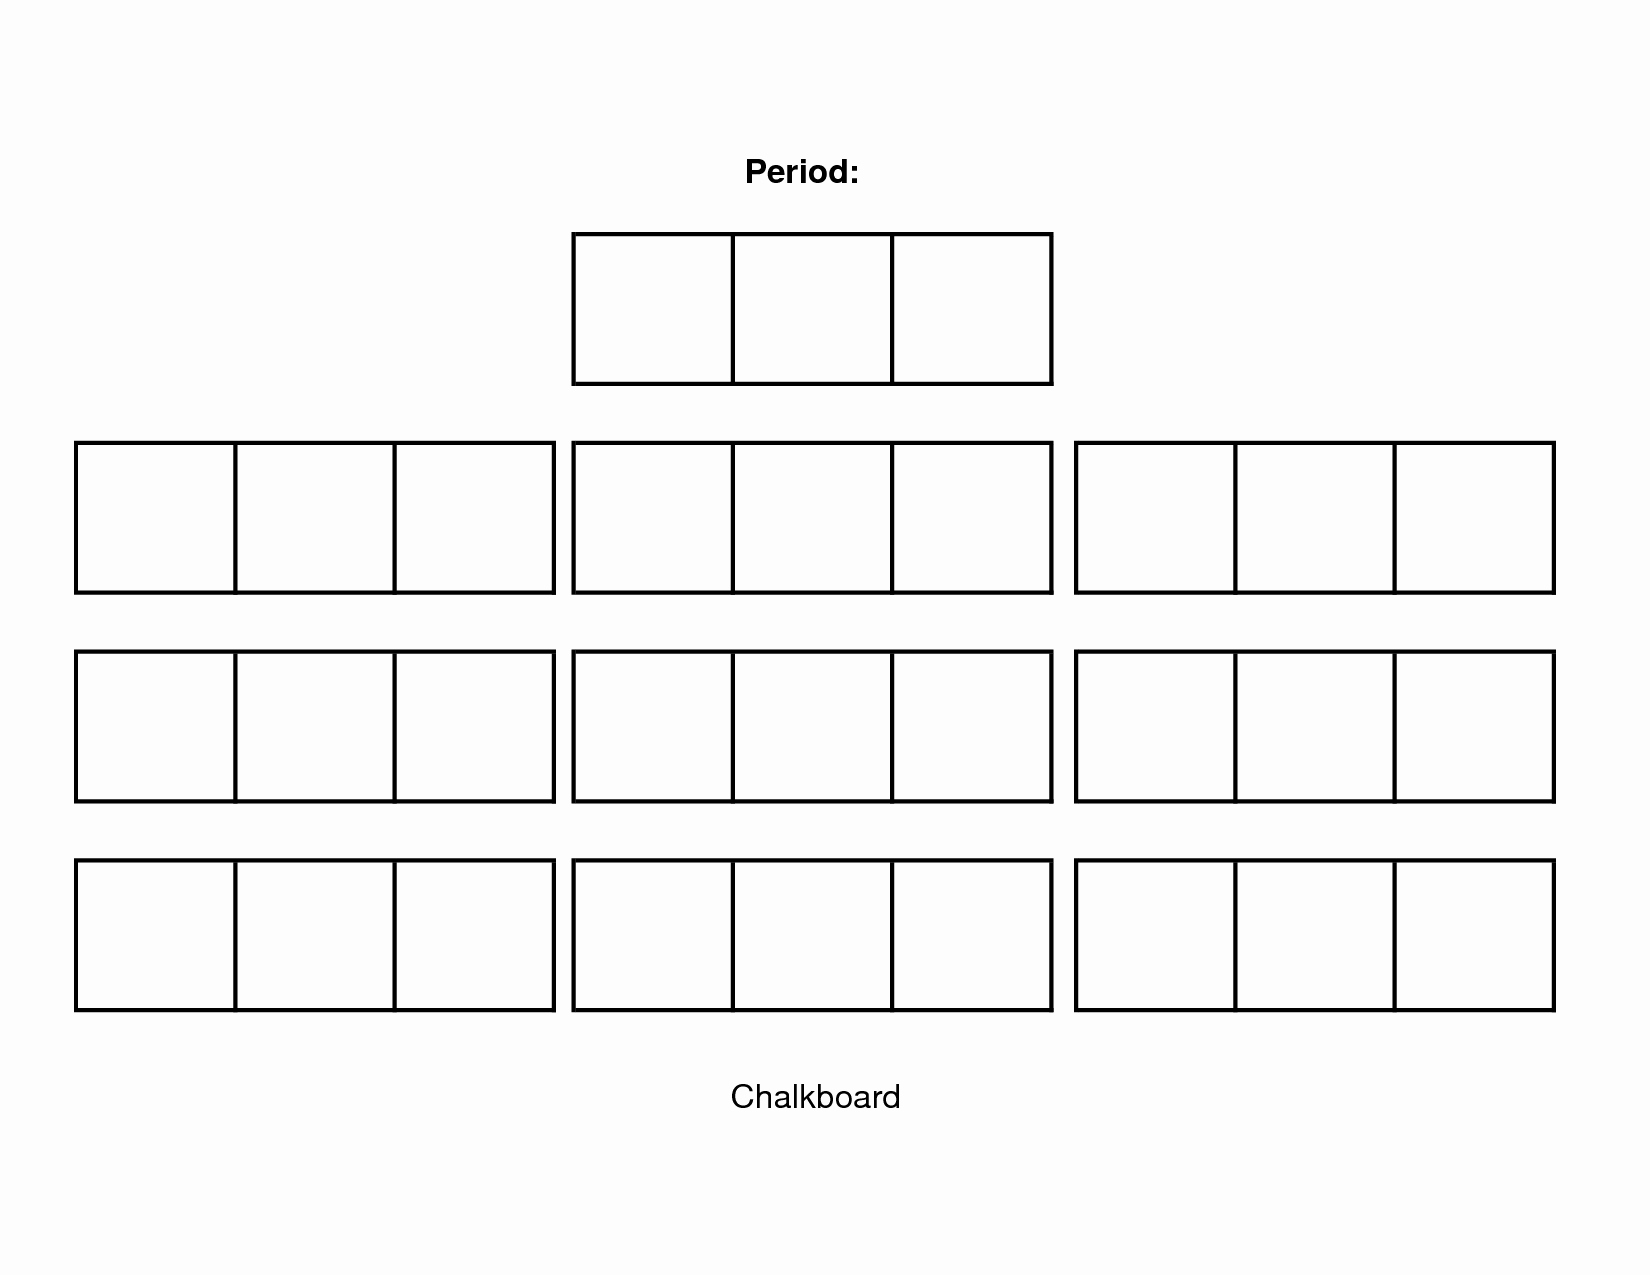 Free Table Seating Chart Template New Free Classroom Seating Chart Maker Portablegasgrillweber